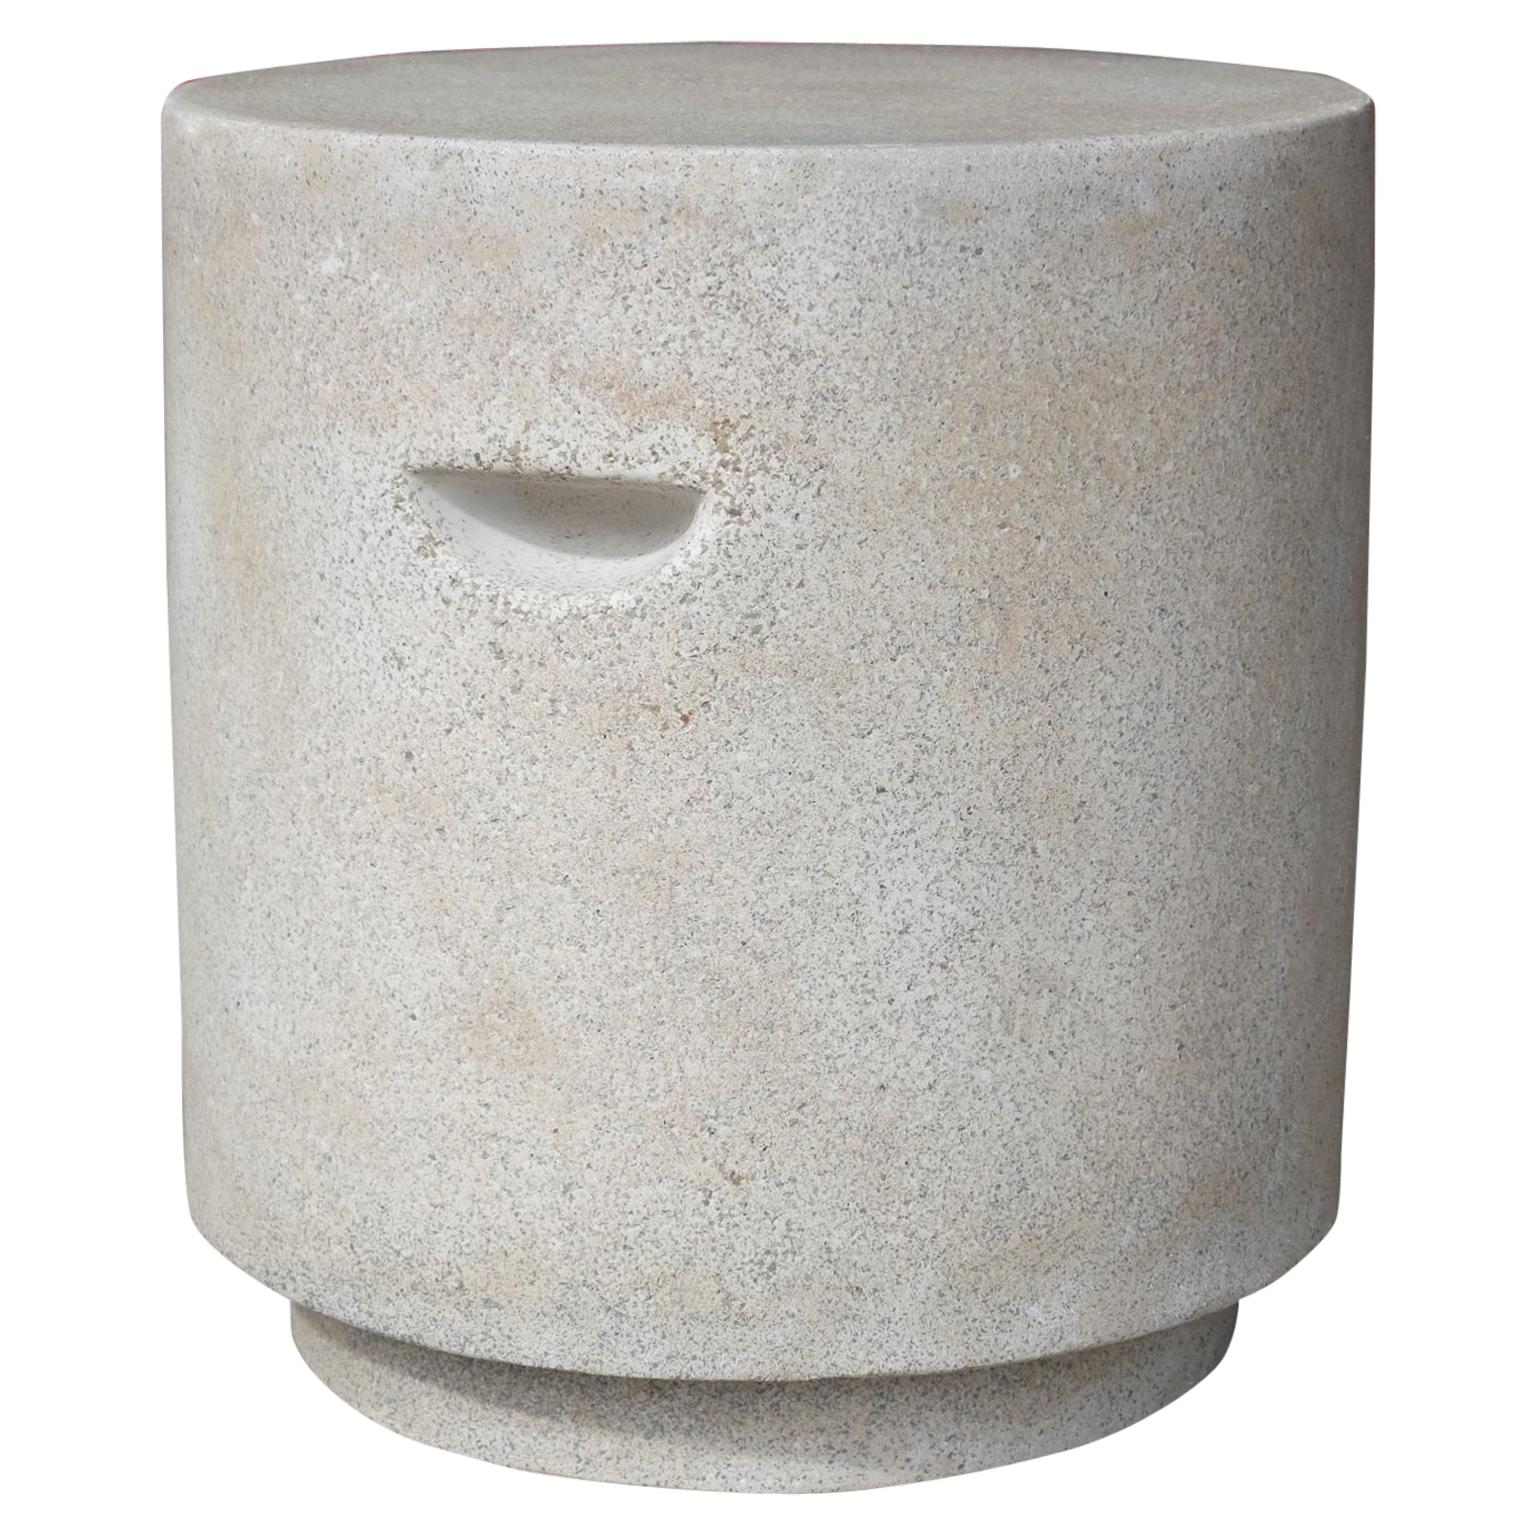 Cast Resin 'Aileen' Side Table, Aged Stone Finish by Zachary A. Design